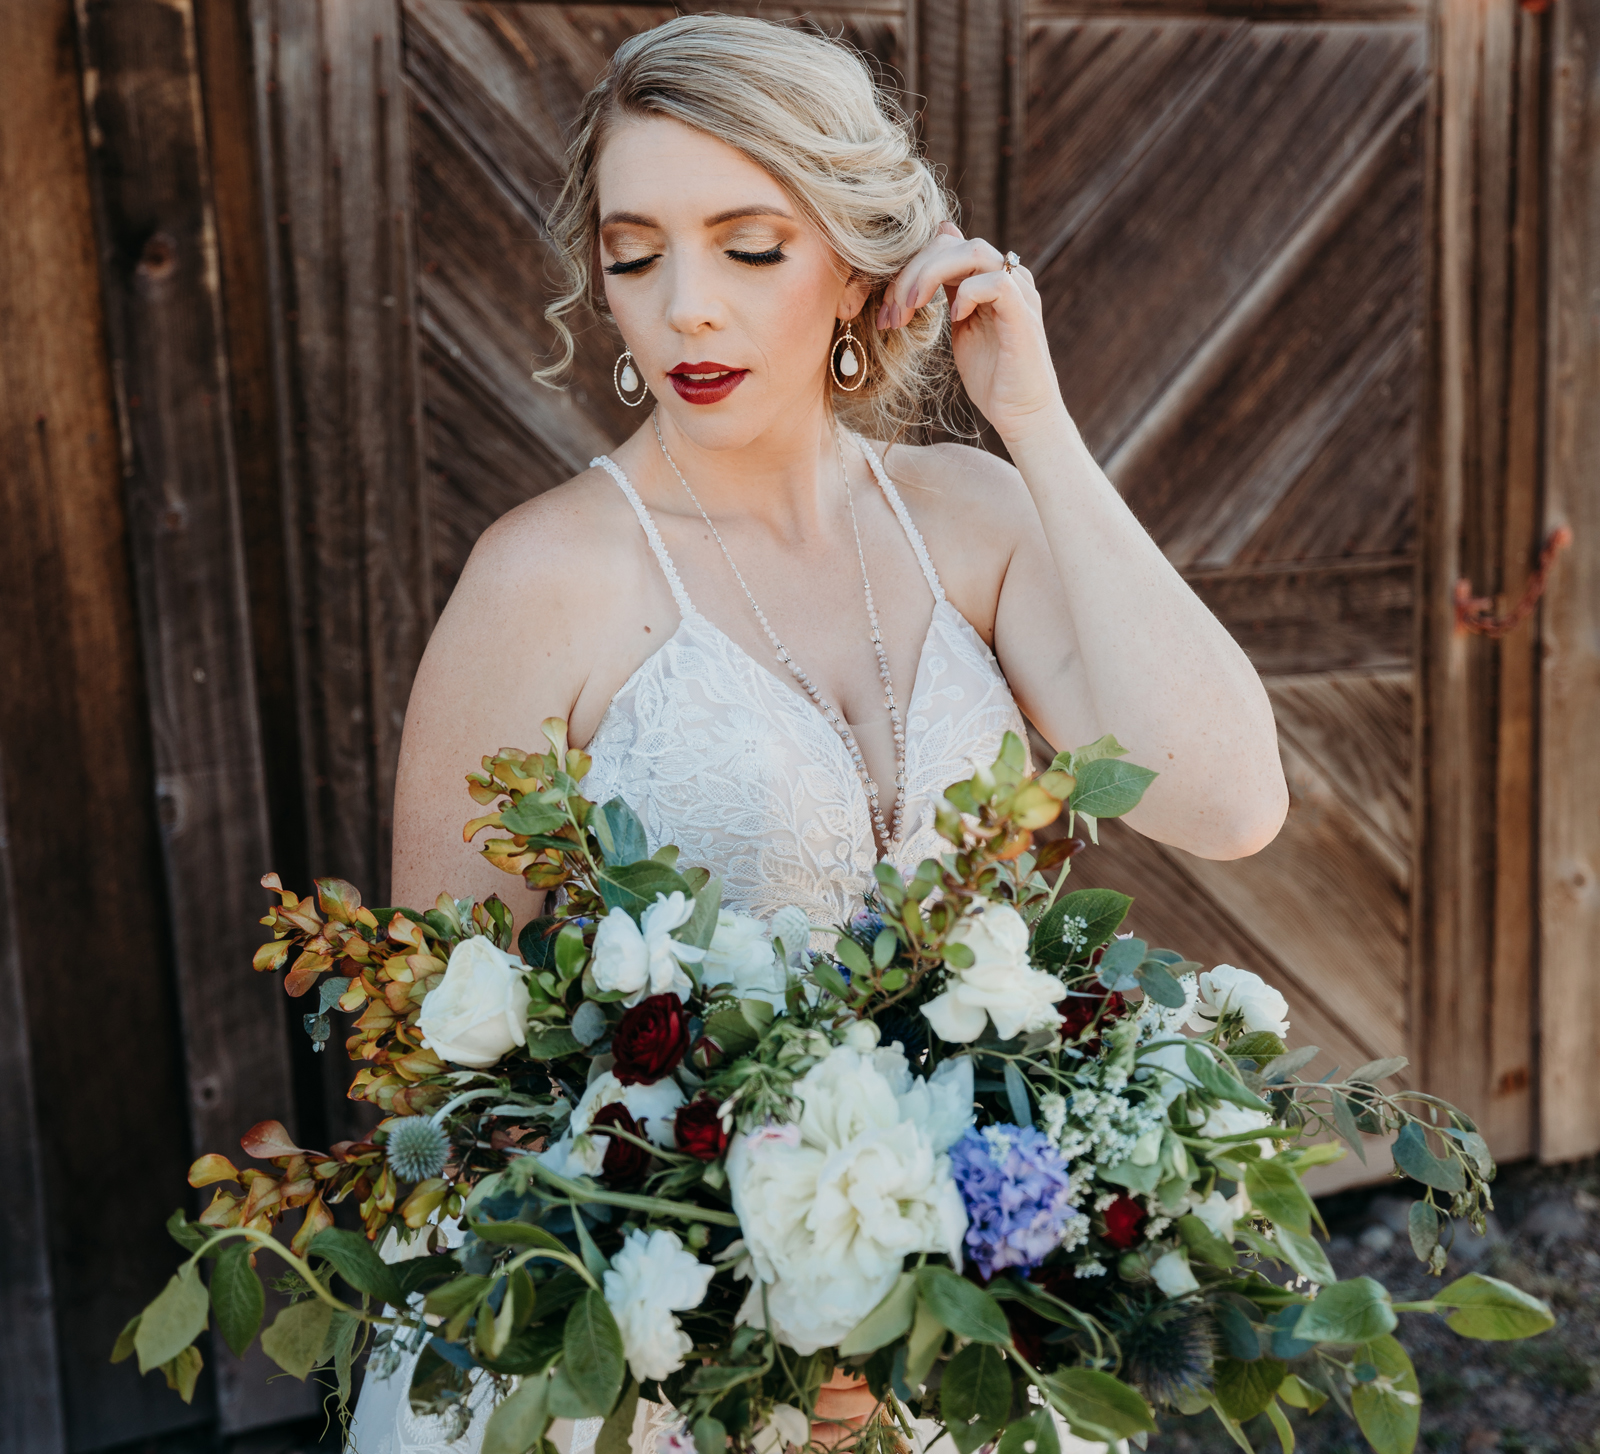 Real Weddings Magazine Special Offer Discount Amour Florist & Bridal Bouquet Flowers  |  Best Sacramento Tahoe Northern California Vendors